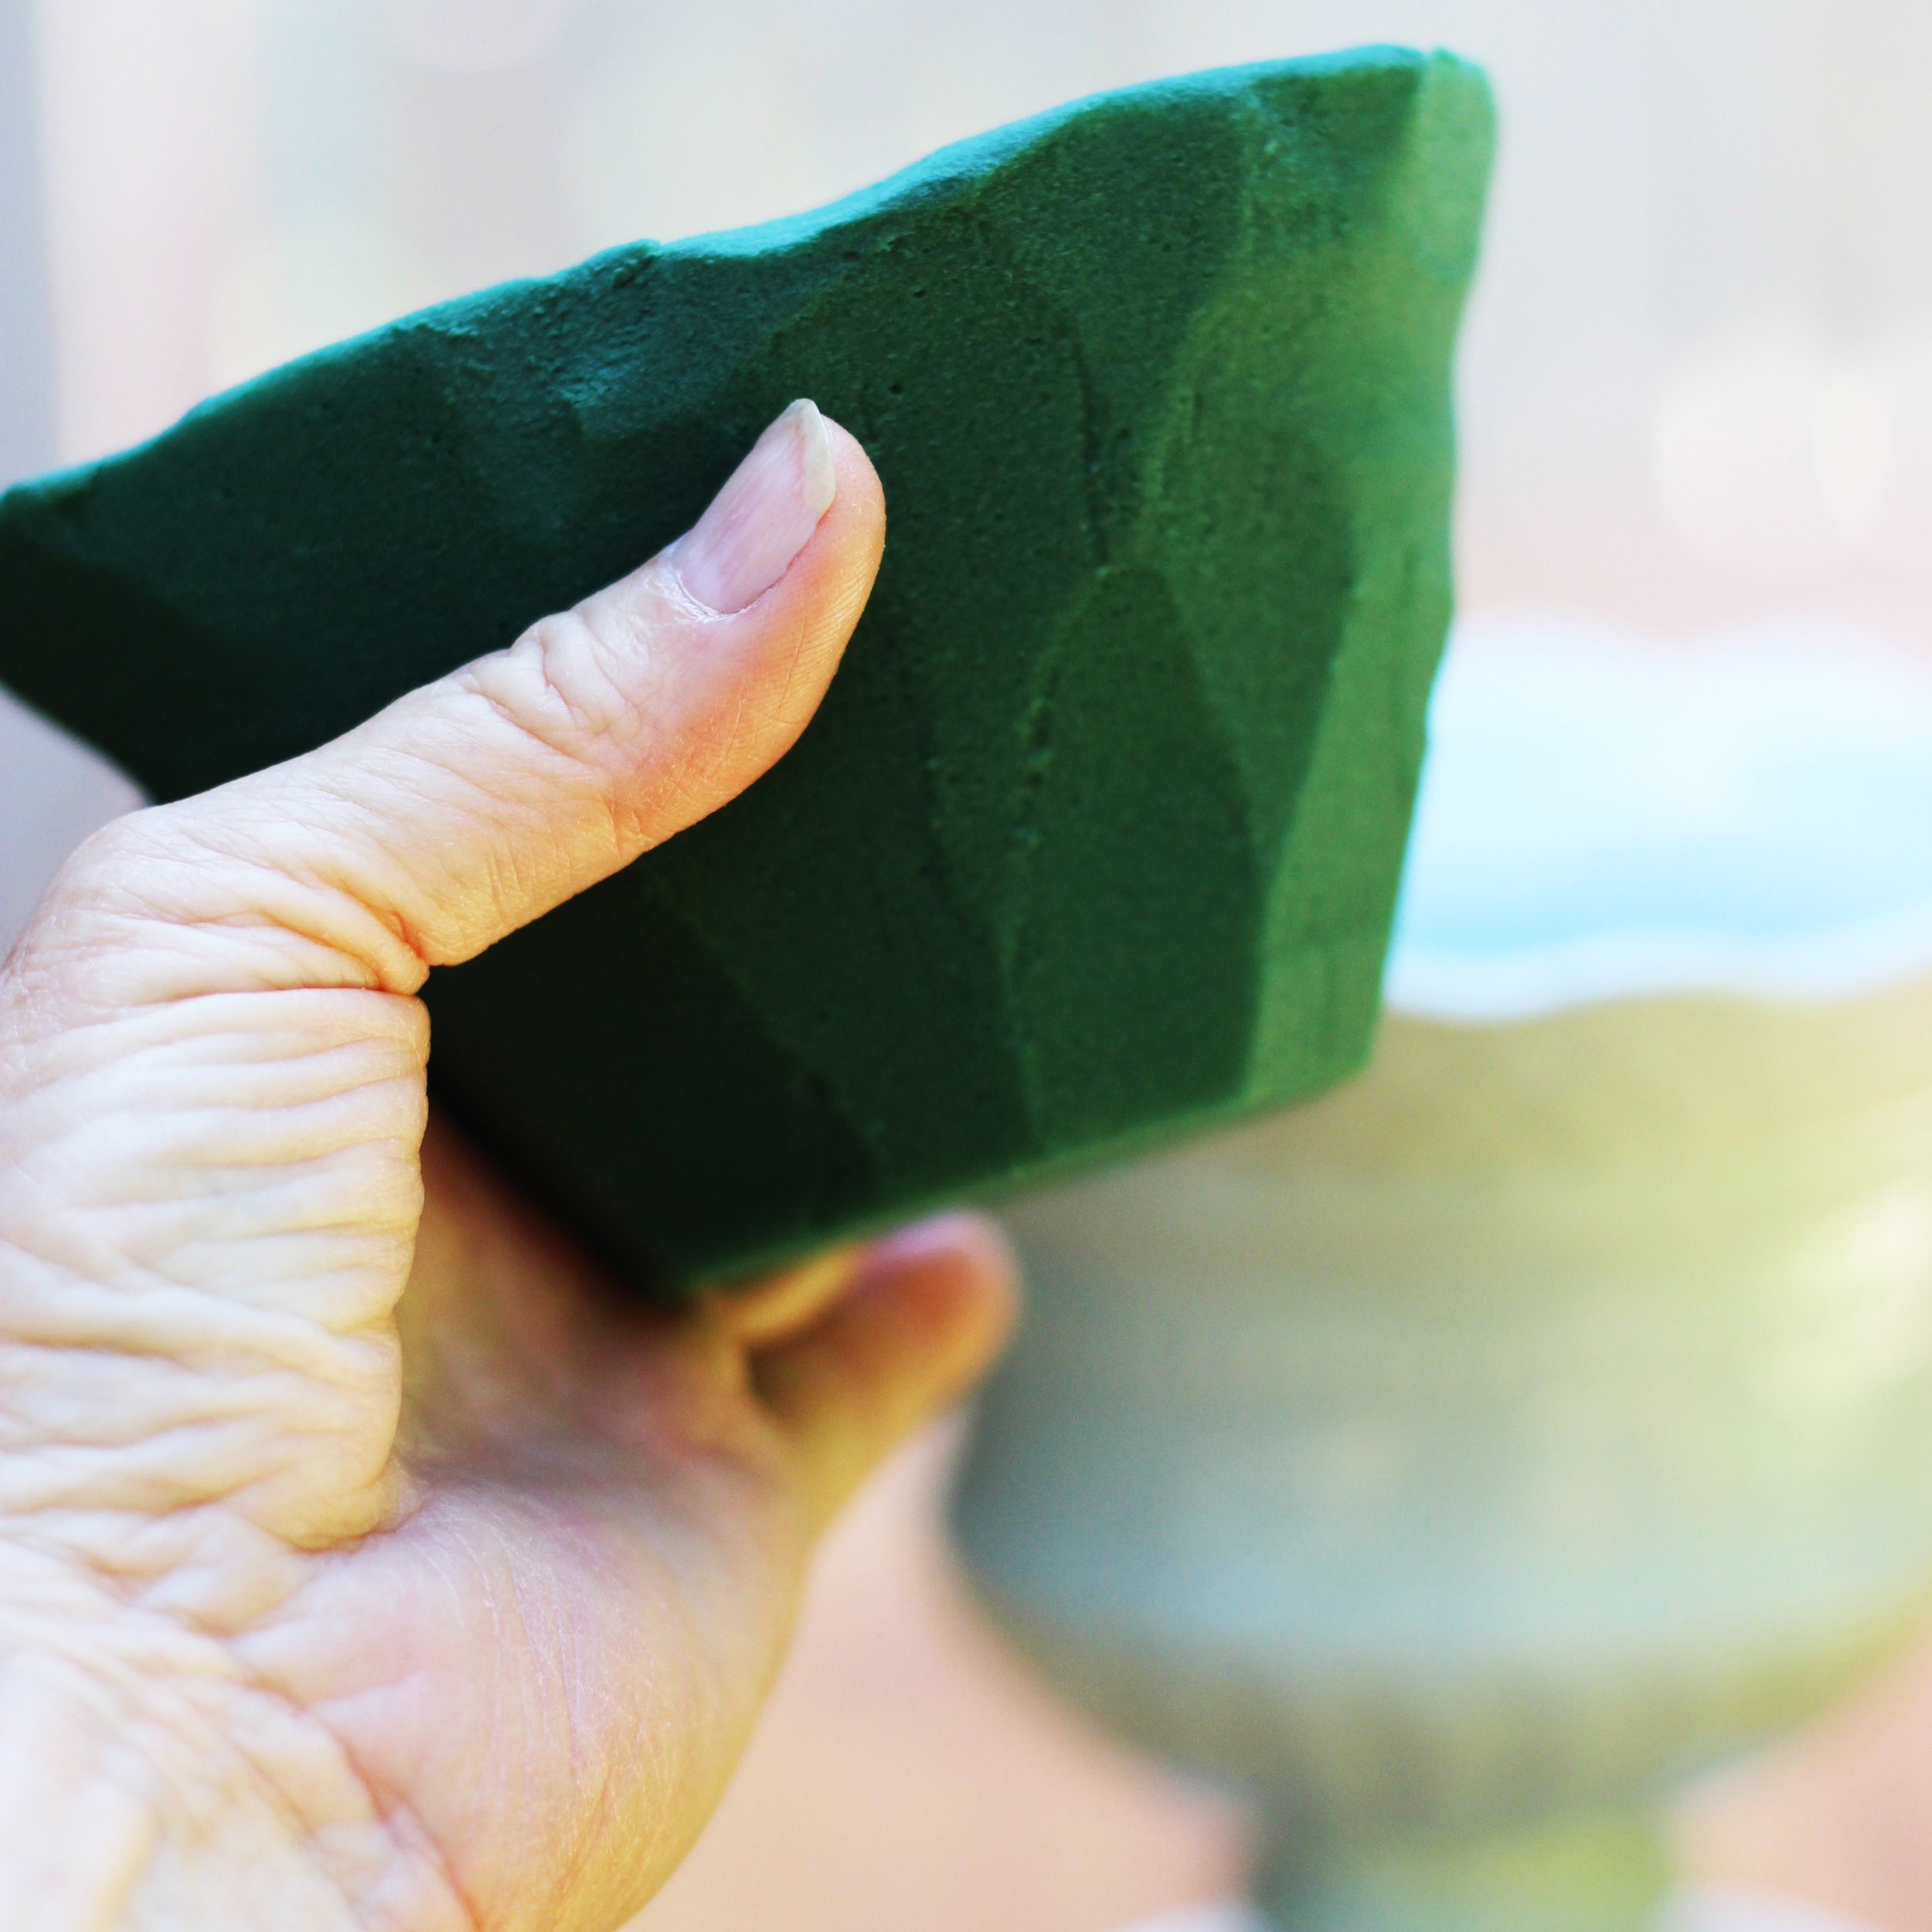 Shape your floral foam with a produce knife so it will fit into the vase.